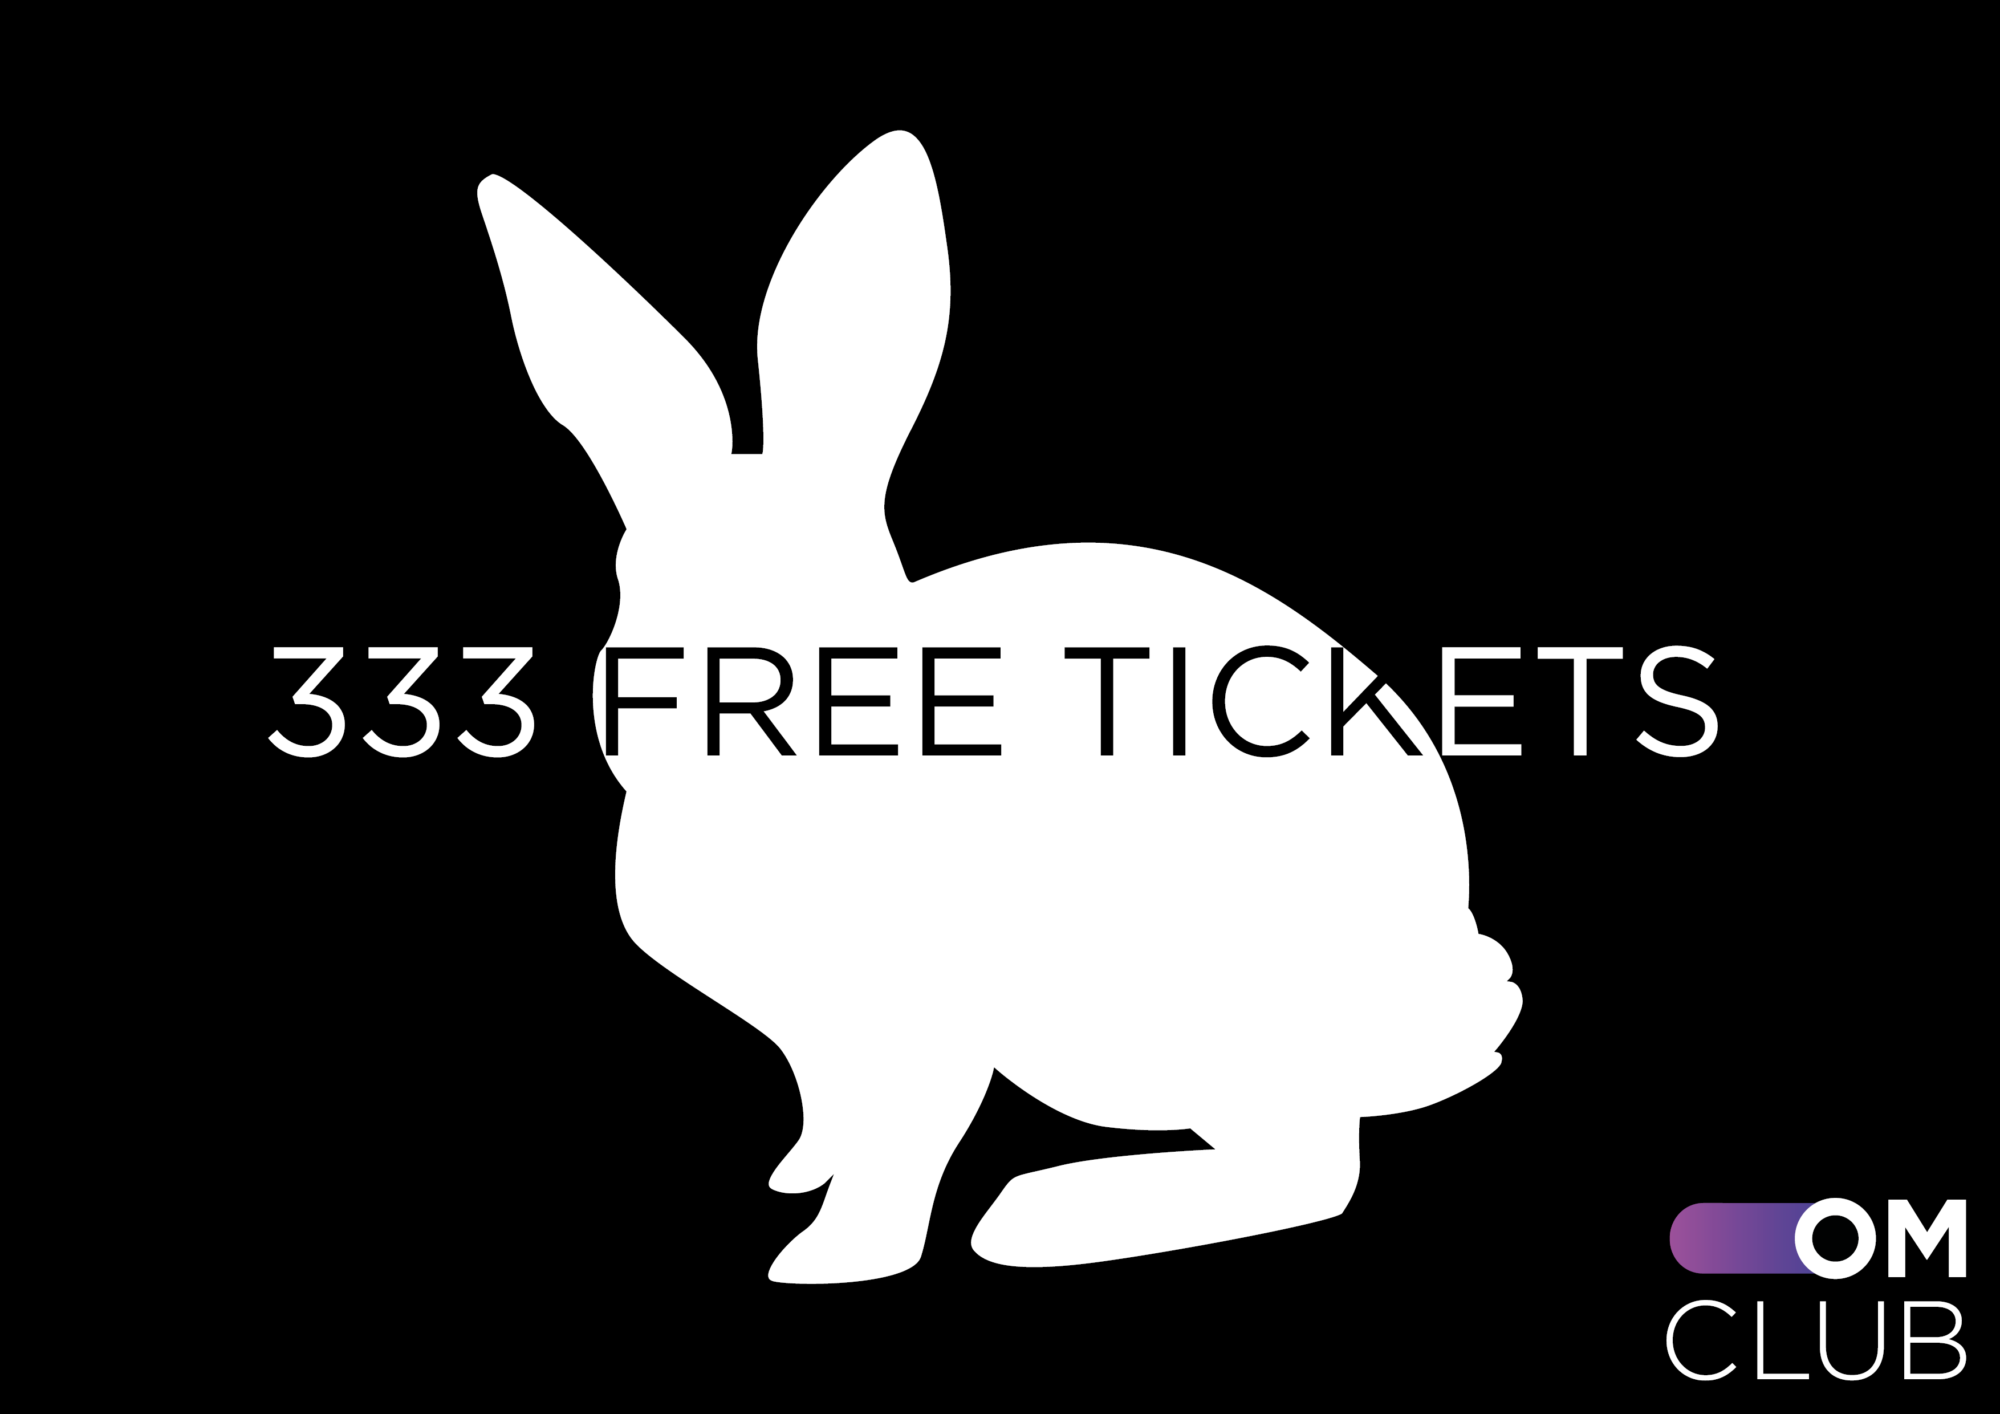 333 FREE TICKETS: Follow the white rabbit